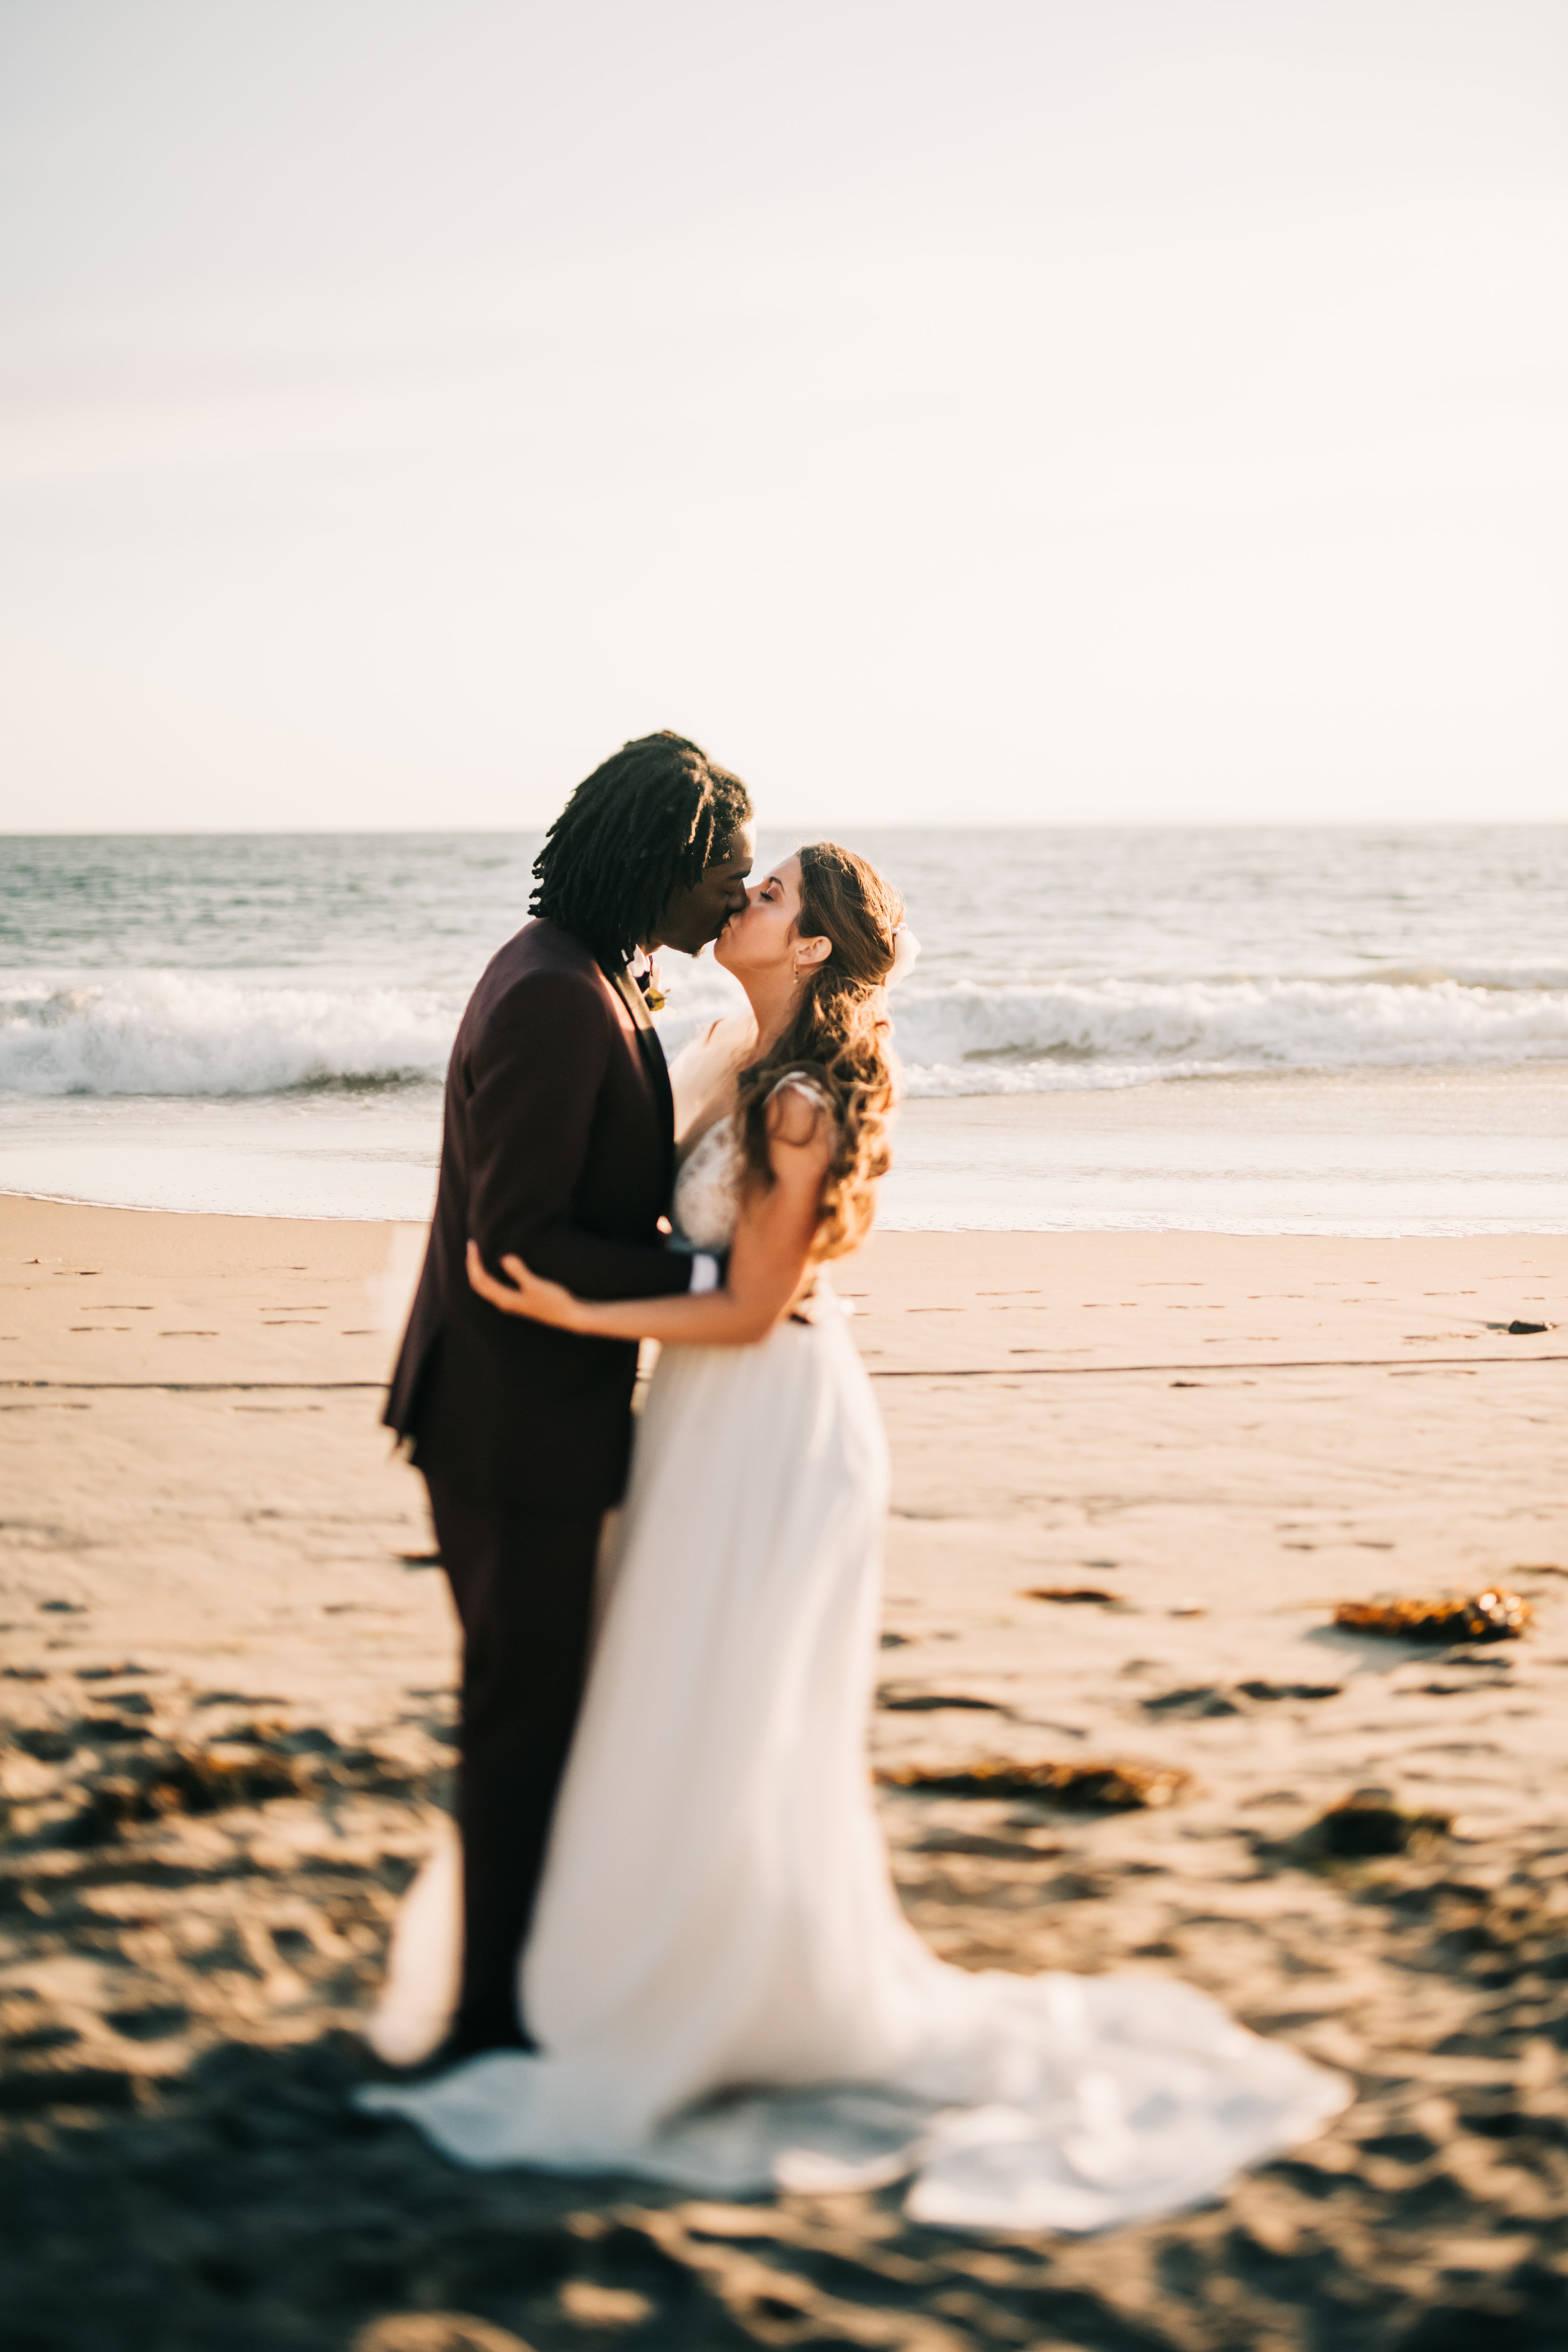 southern california laguna beach salt creek beach los angeles socal boho bay area akland san francisco engagement wedding nontraditional fun creative eclectic photographer magic-891.jpg